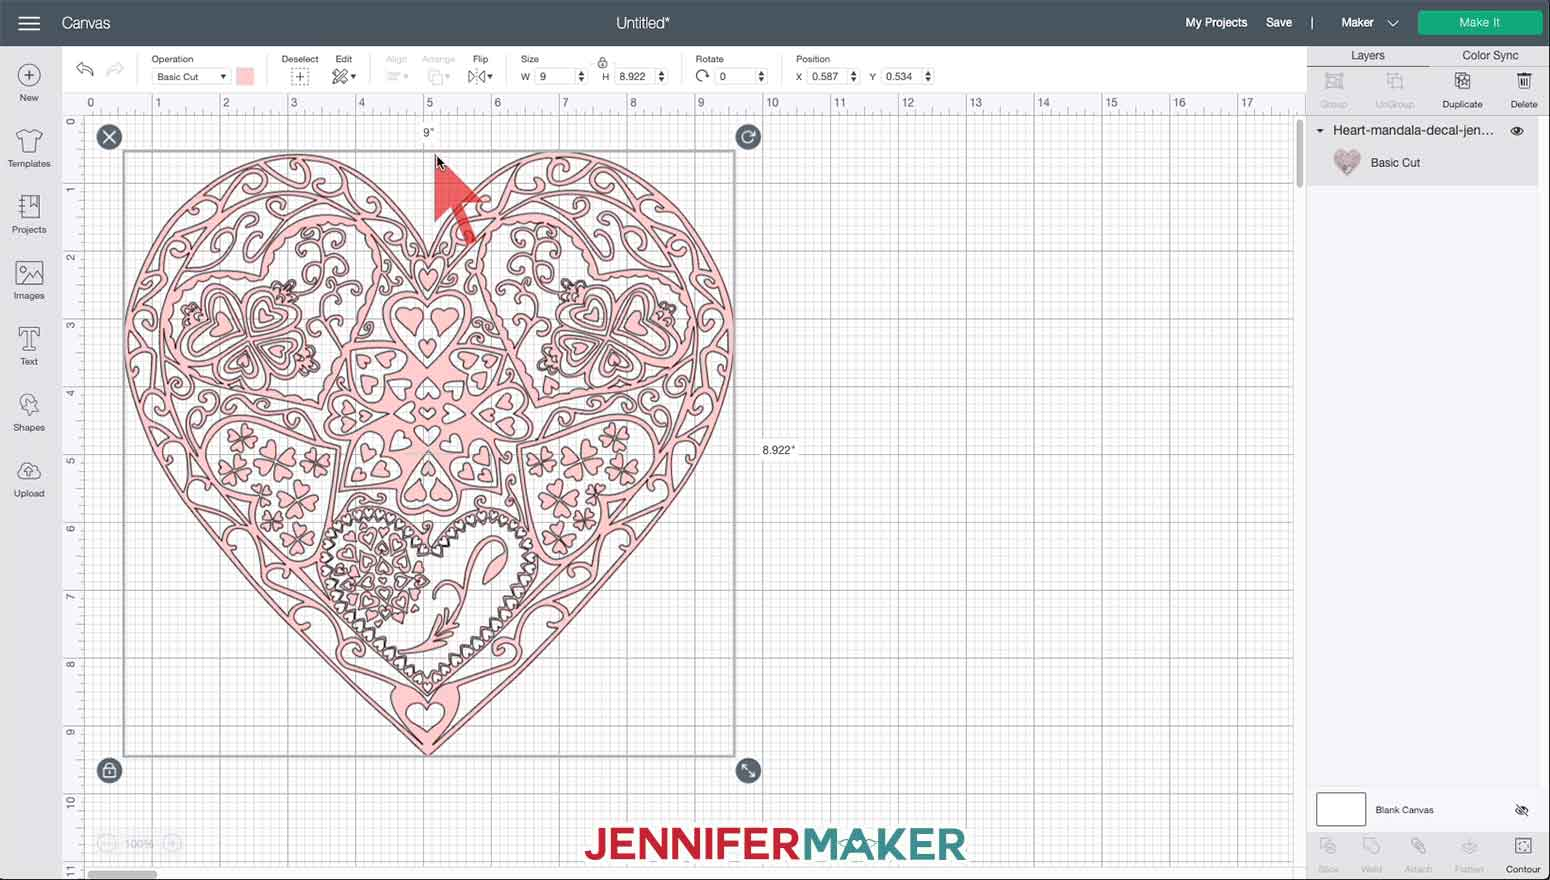 Heart Mandala SVG uploaded to Cricut Design Space